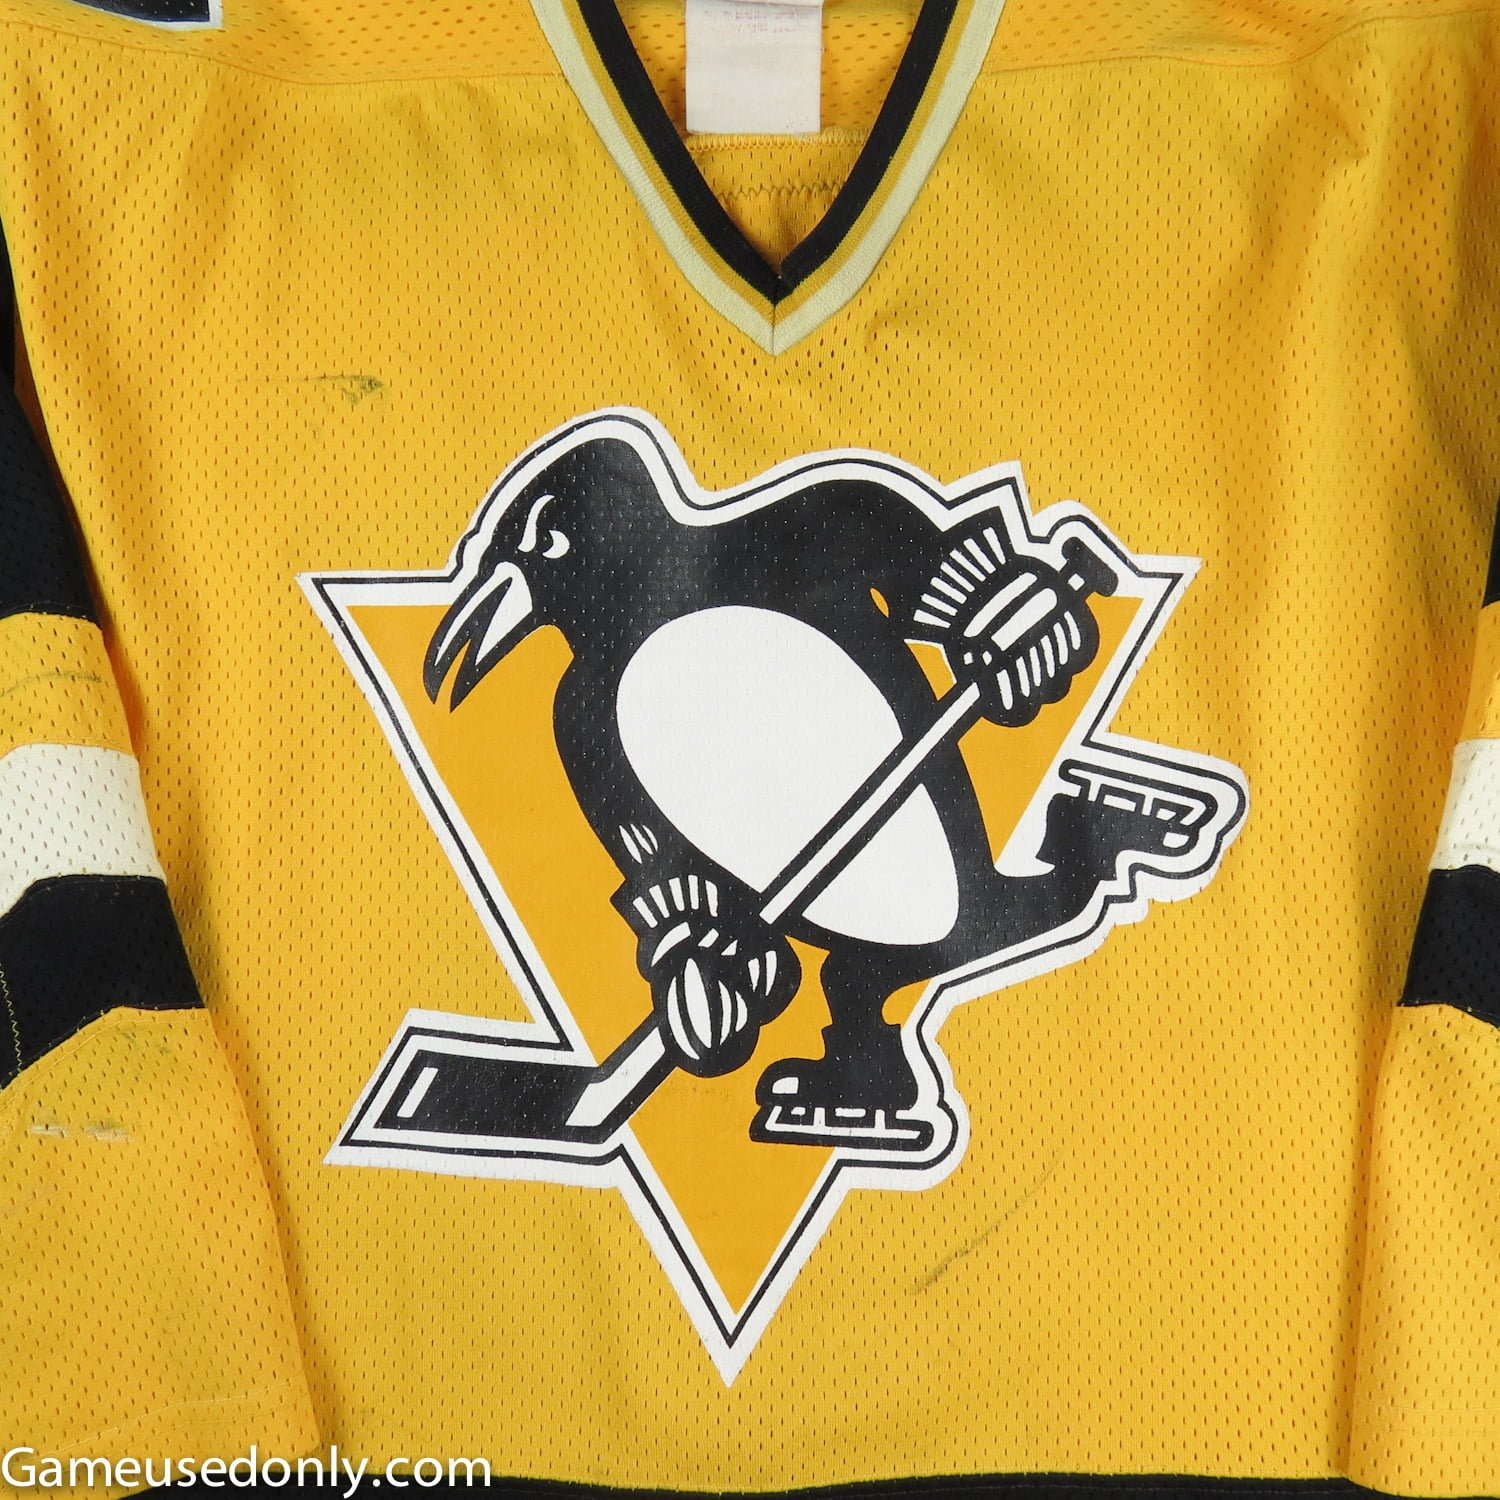 Pittsburgh-Penguins-Crest-Jersey-Detail-Worn-1983